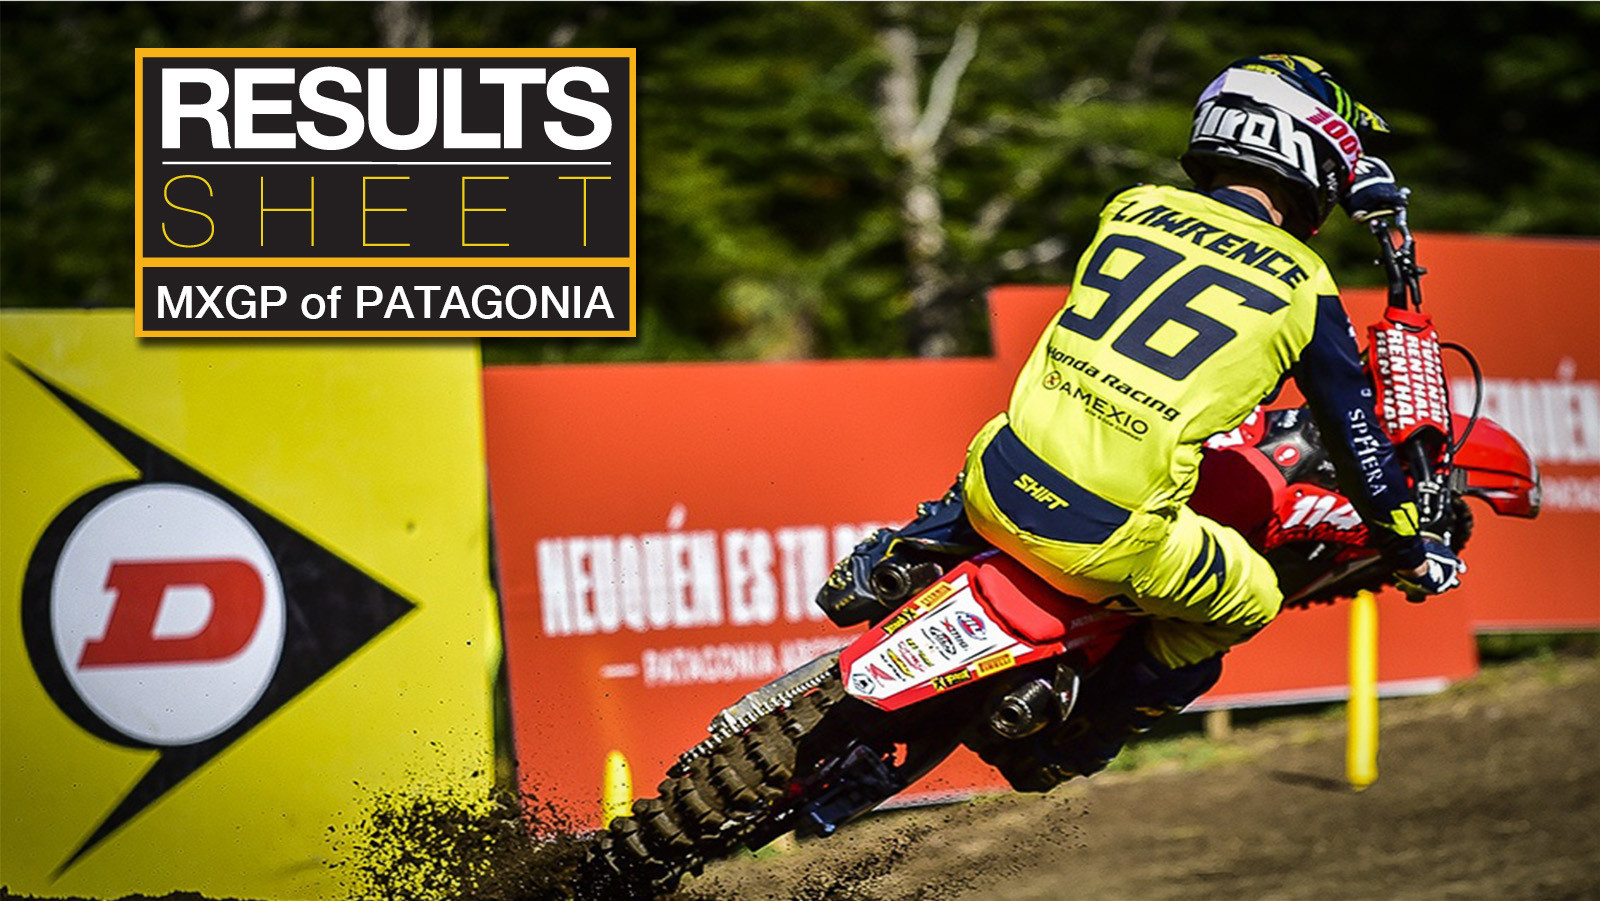 Results Sheet: 2018 MXGP of Patagonia